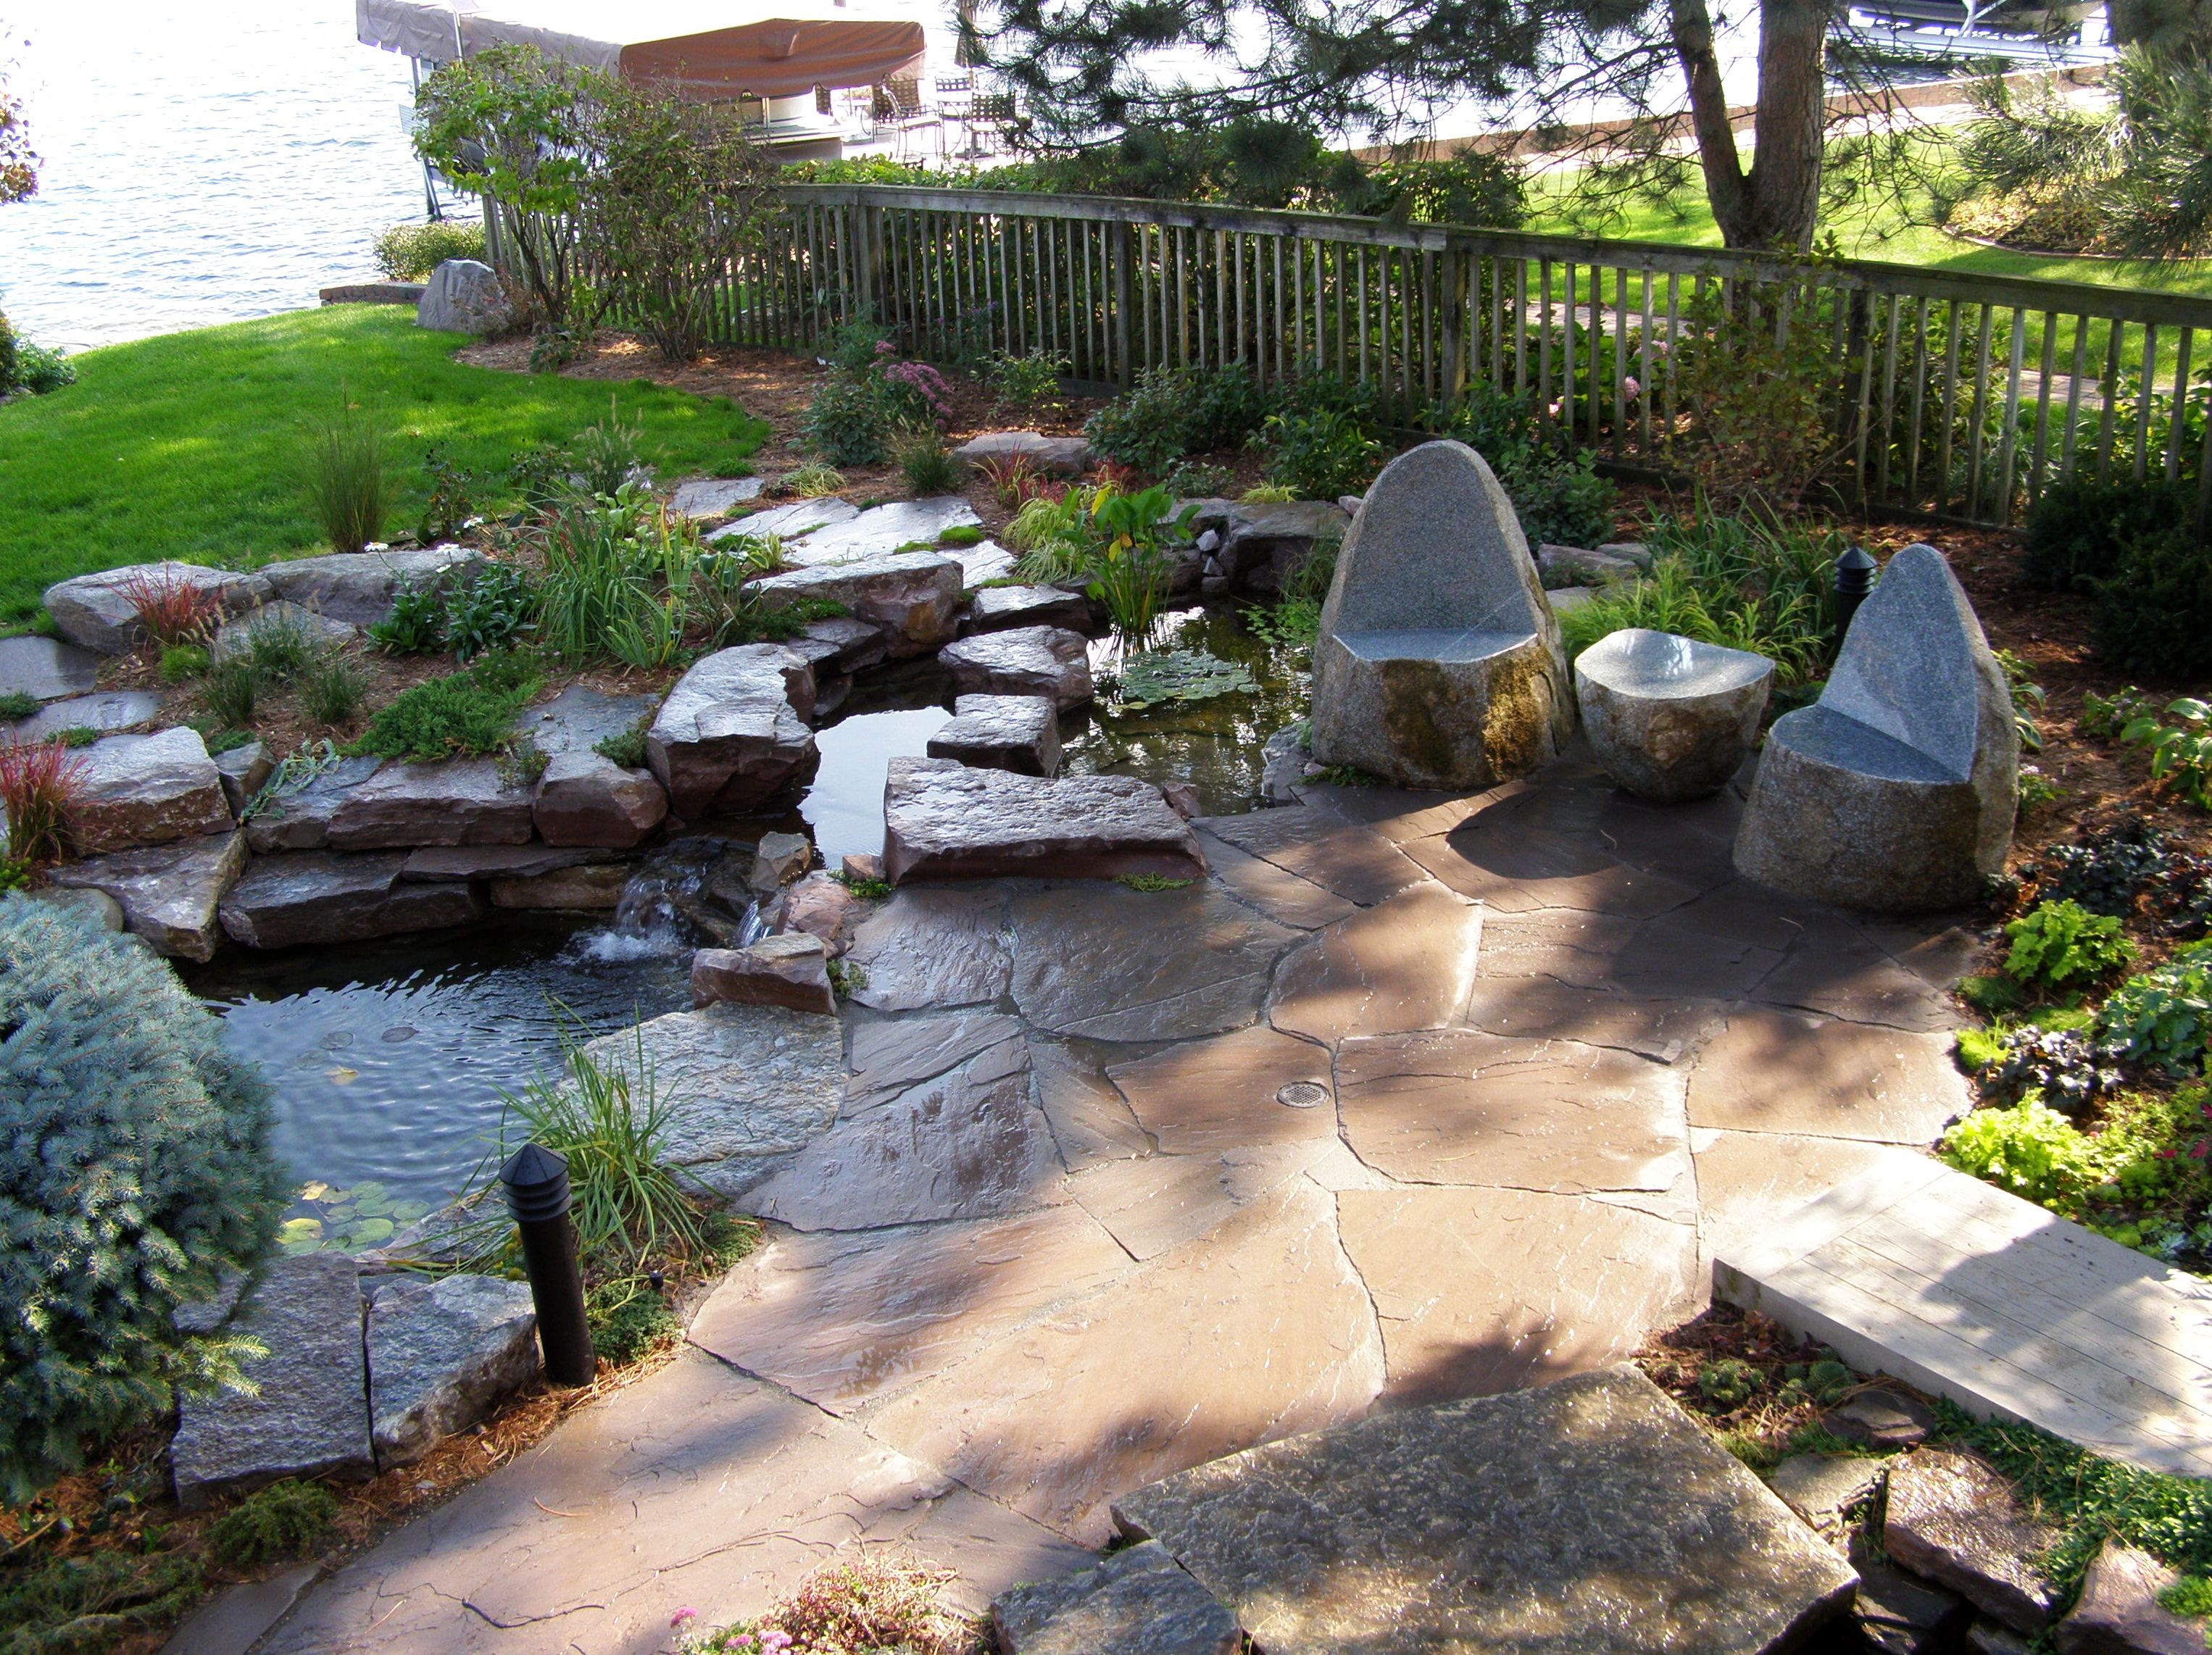 landscaping patio with pond - google search | landscaping ideas ... - Natural Stone Patio Designs